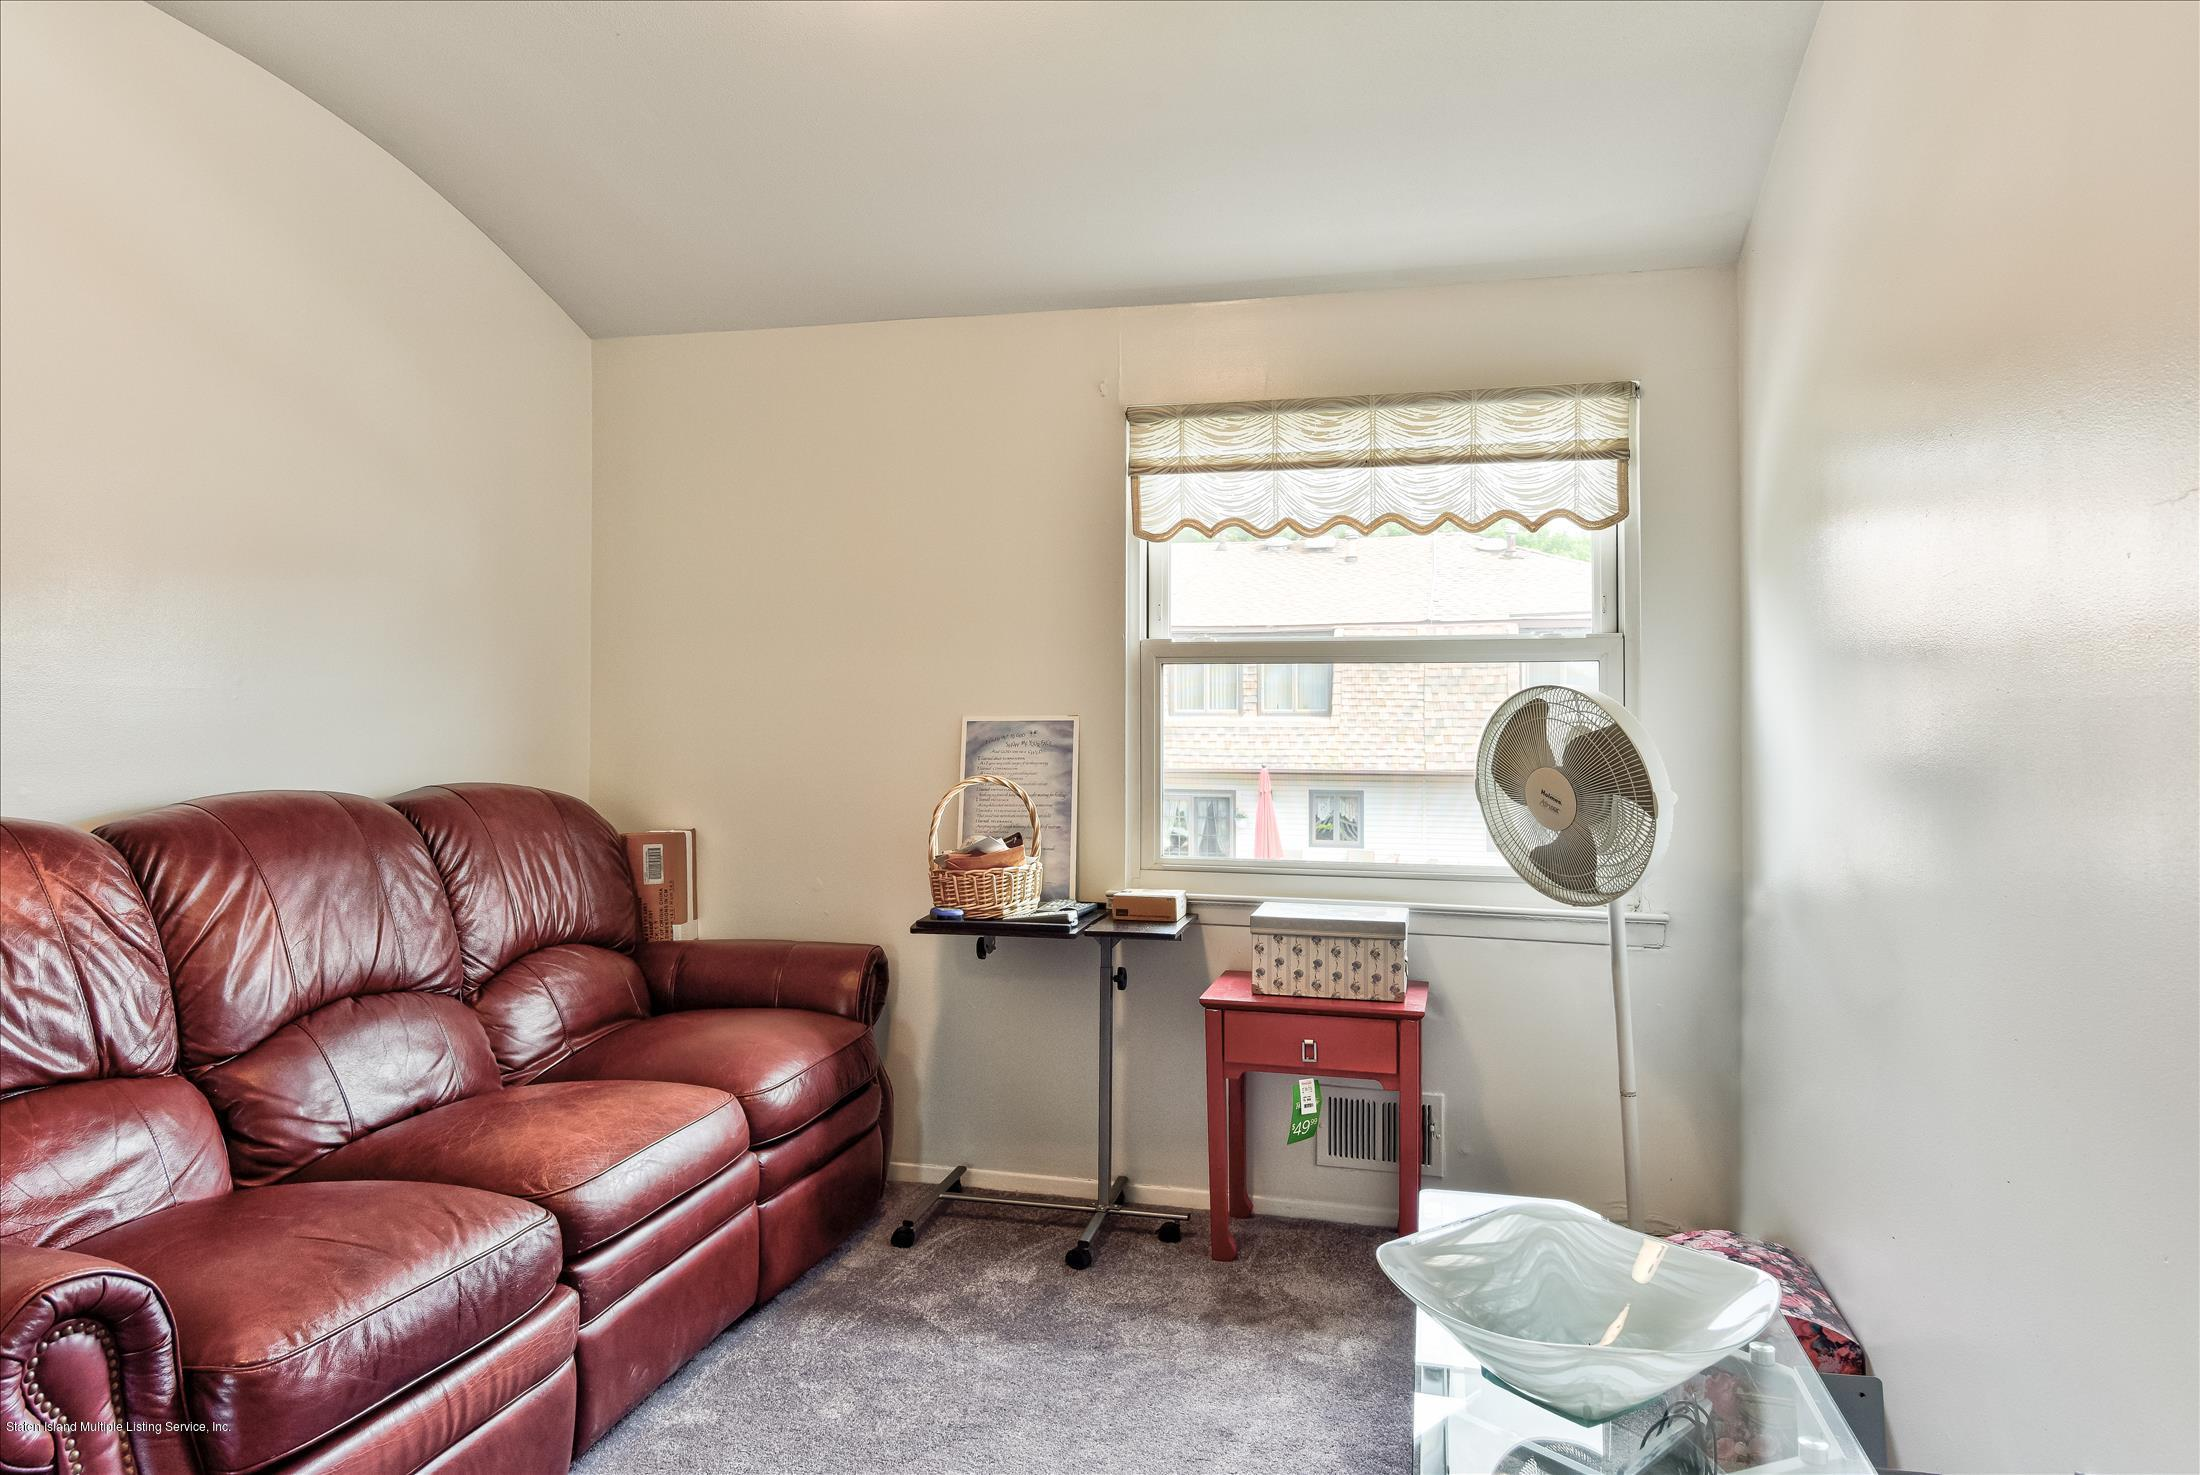 Single Family - Attached 833 Rensselaer Avenue  Staten Island, NY 10309, MLS-1125461-17